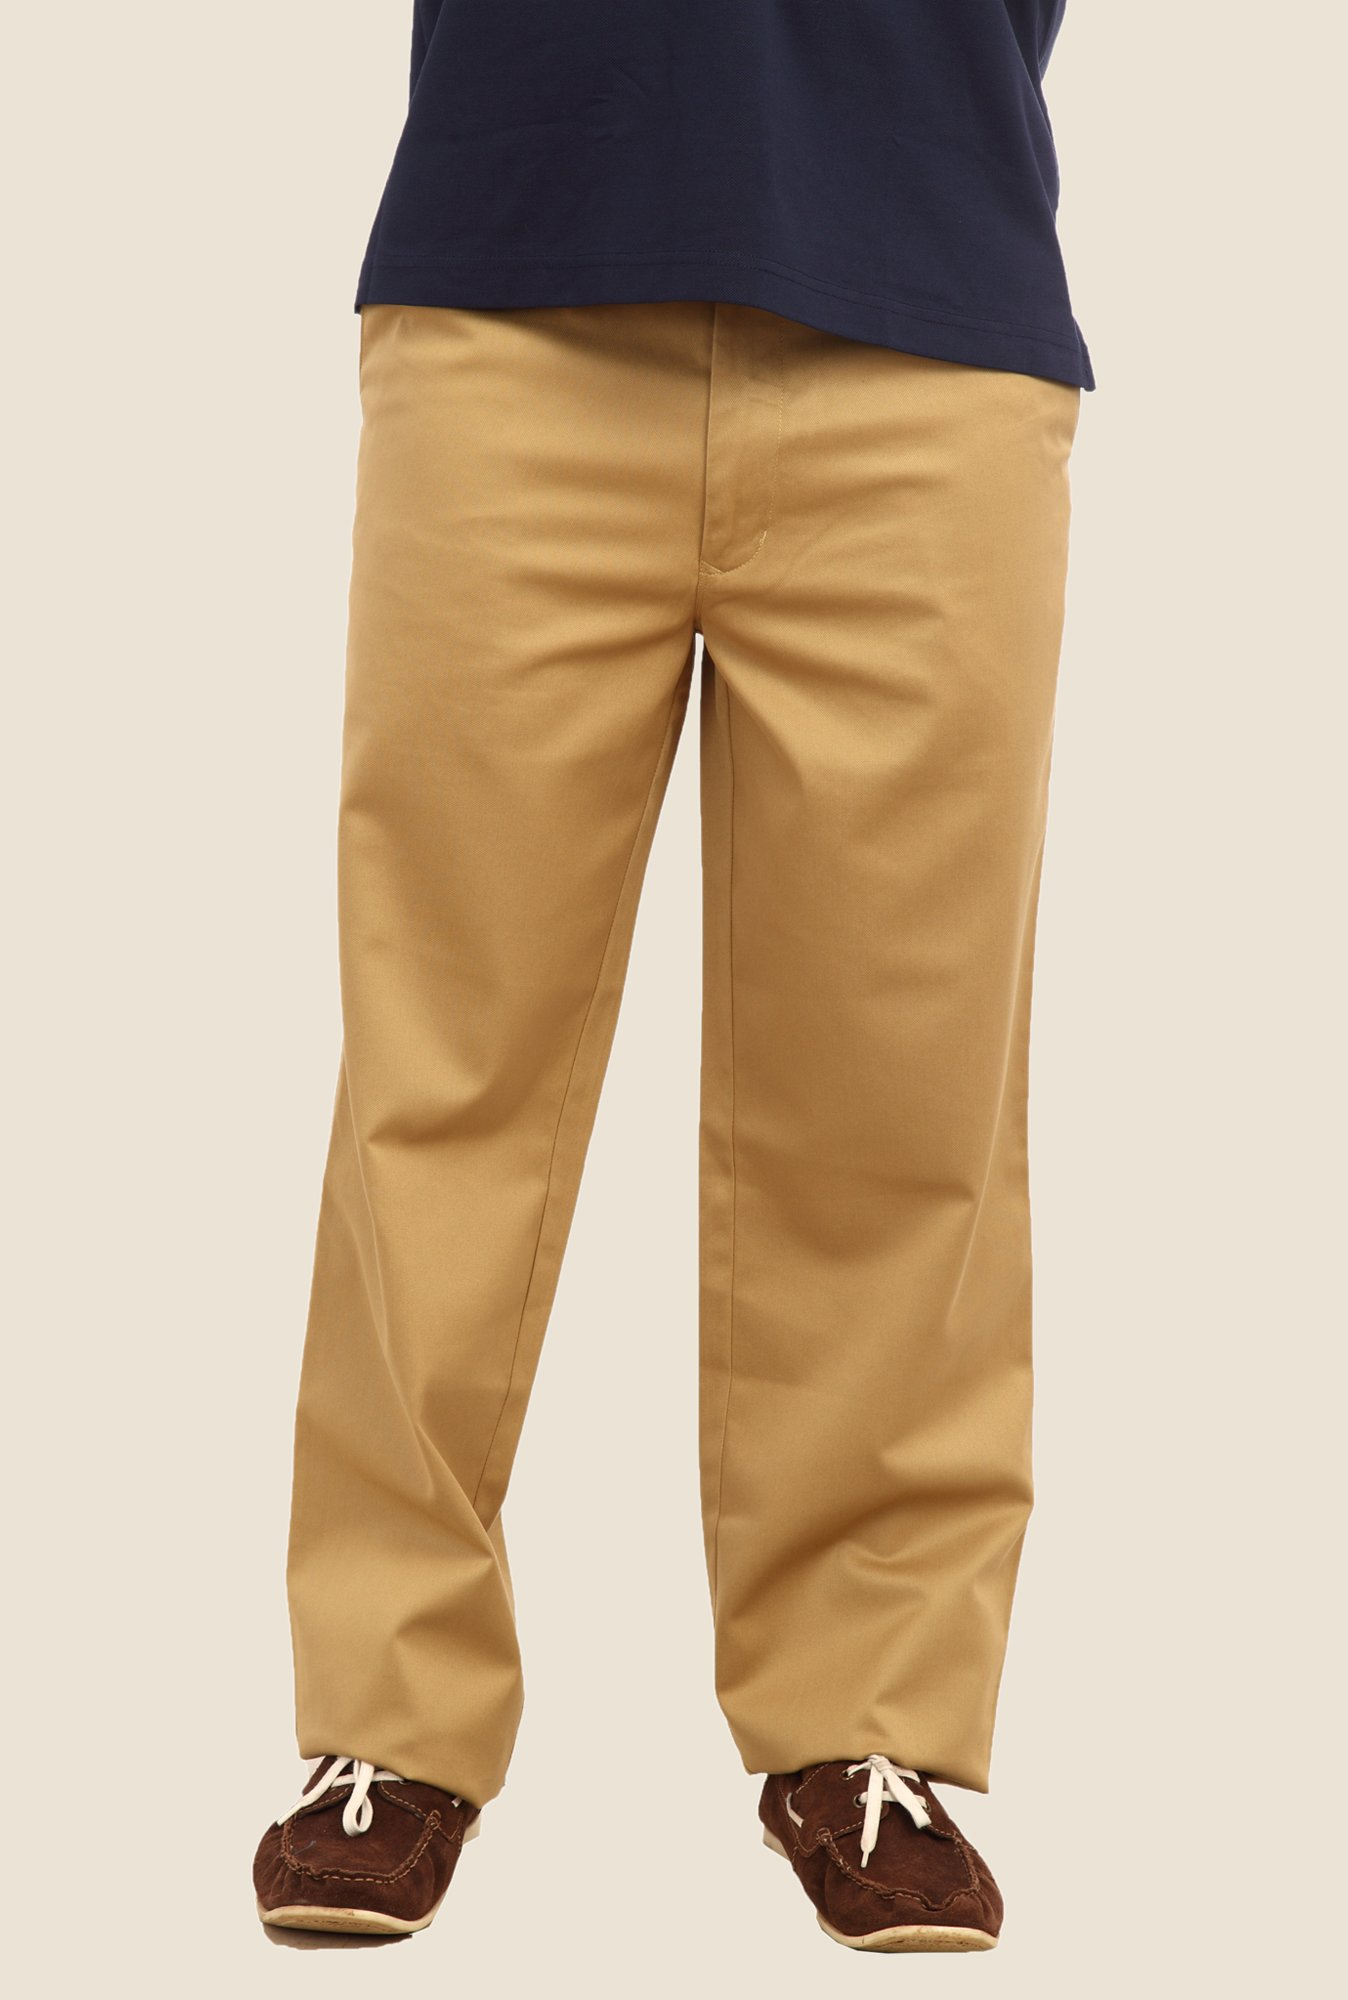 ColorPlus Khaki Solid Trouser